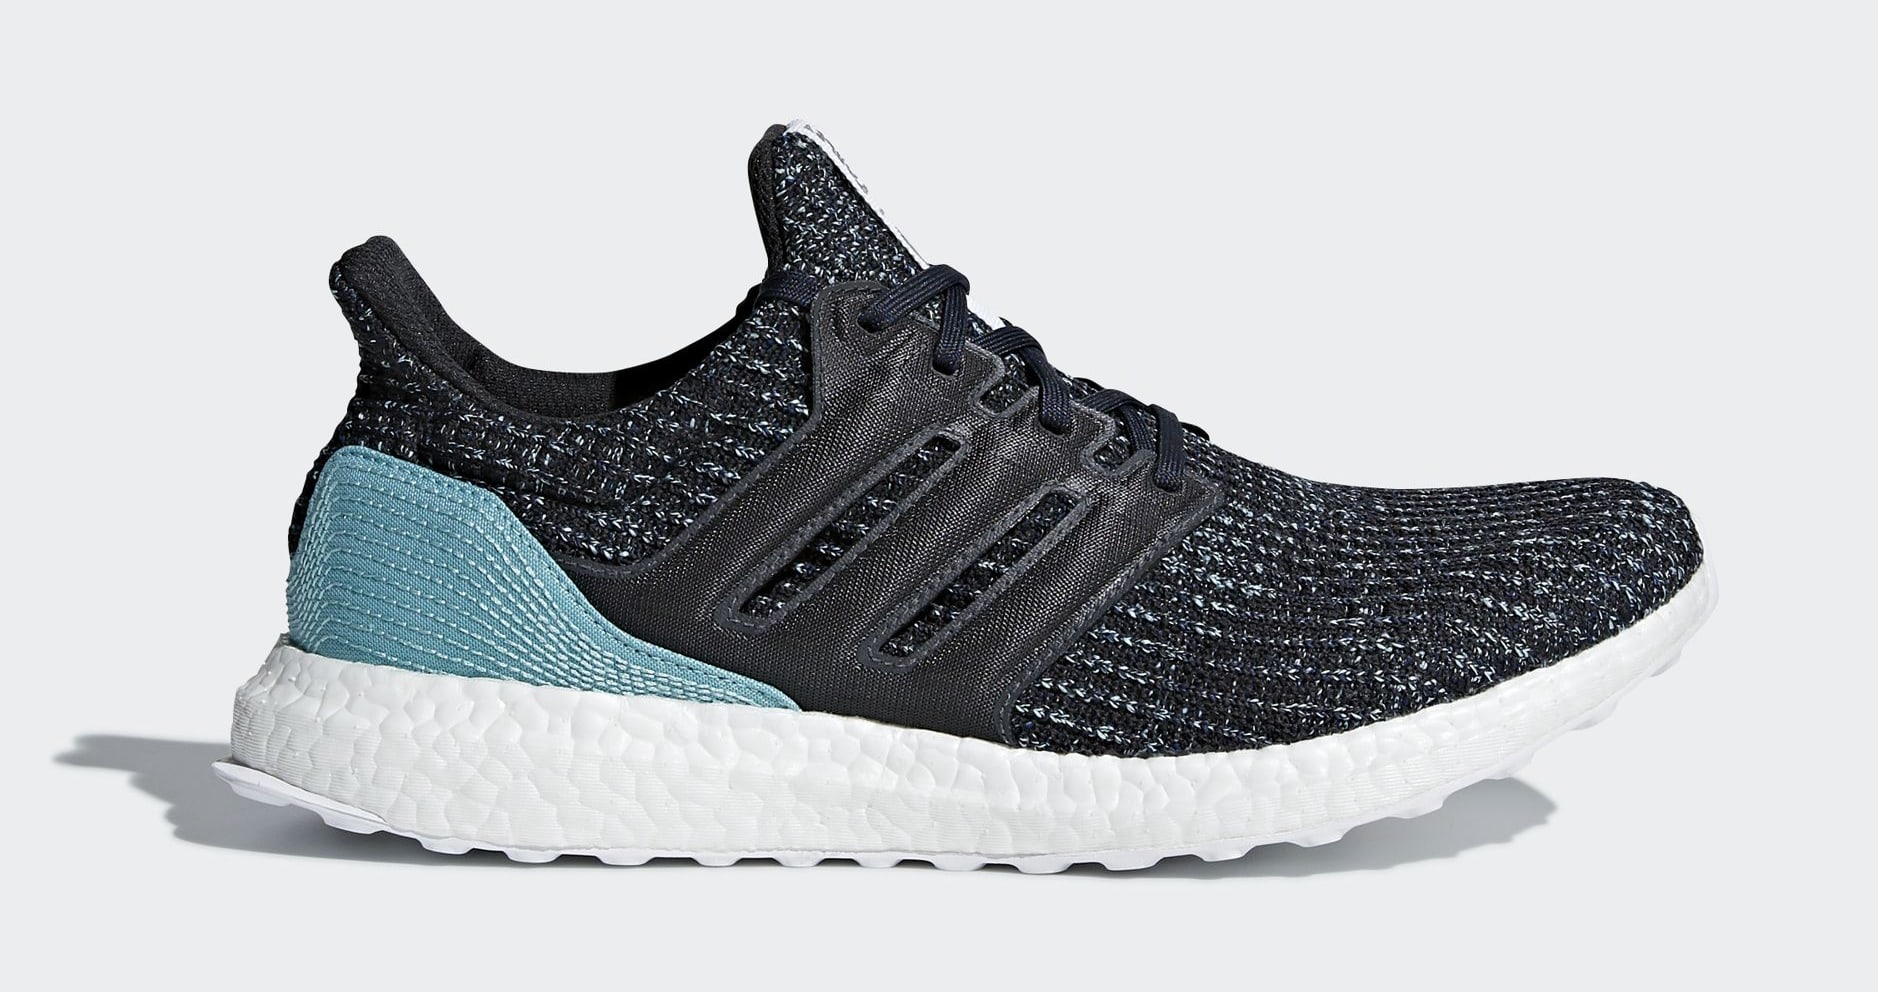 parley-adidas-ultra-boost-cg3673-release-20180422